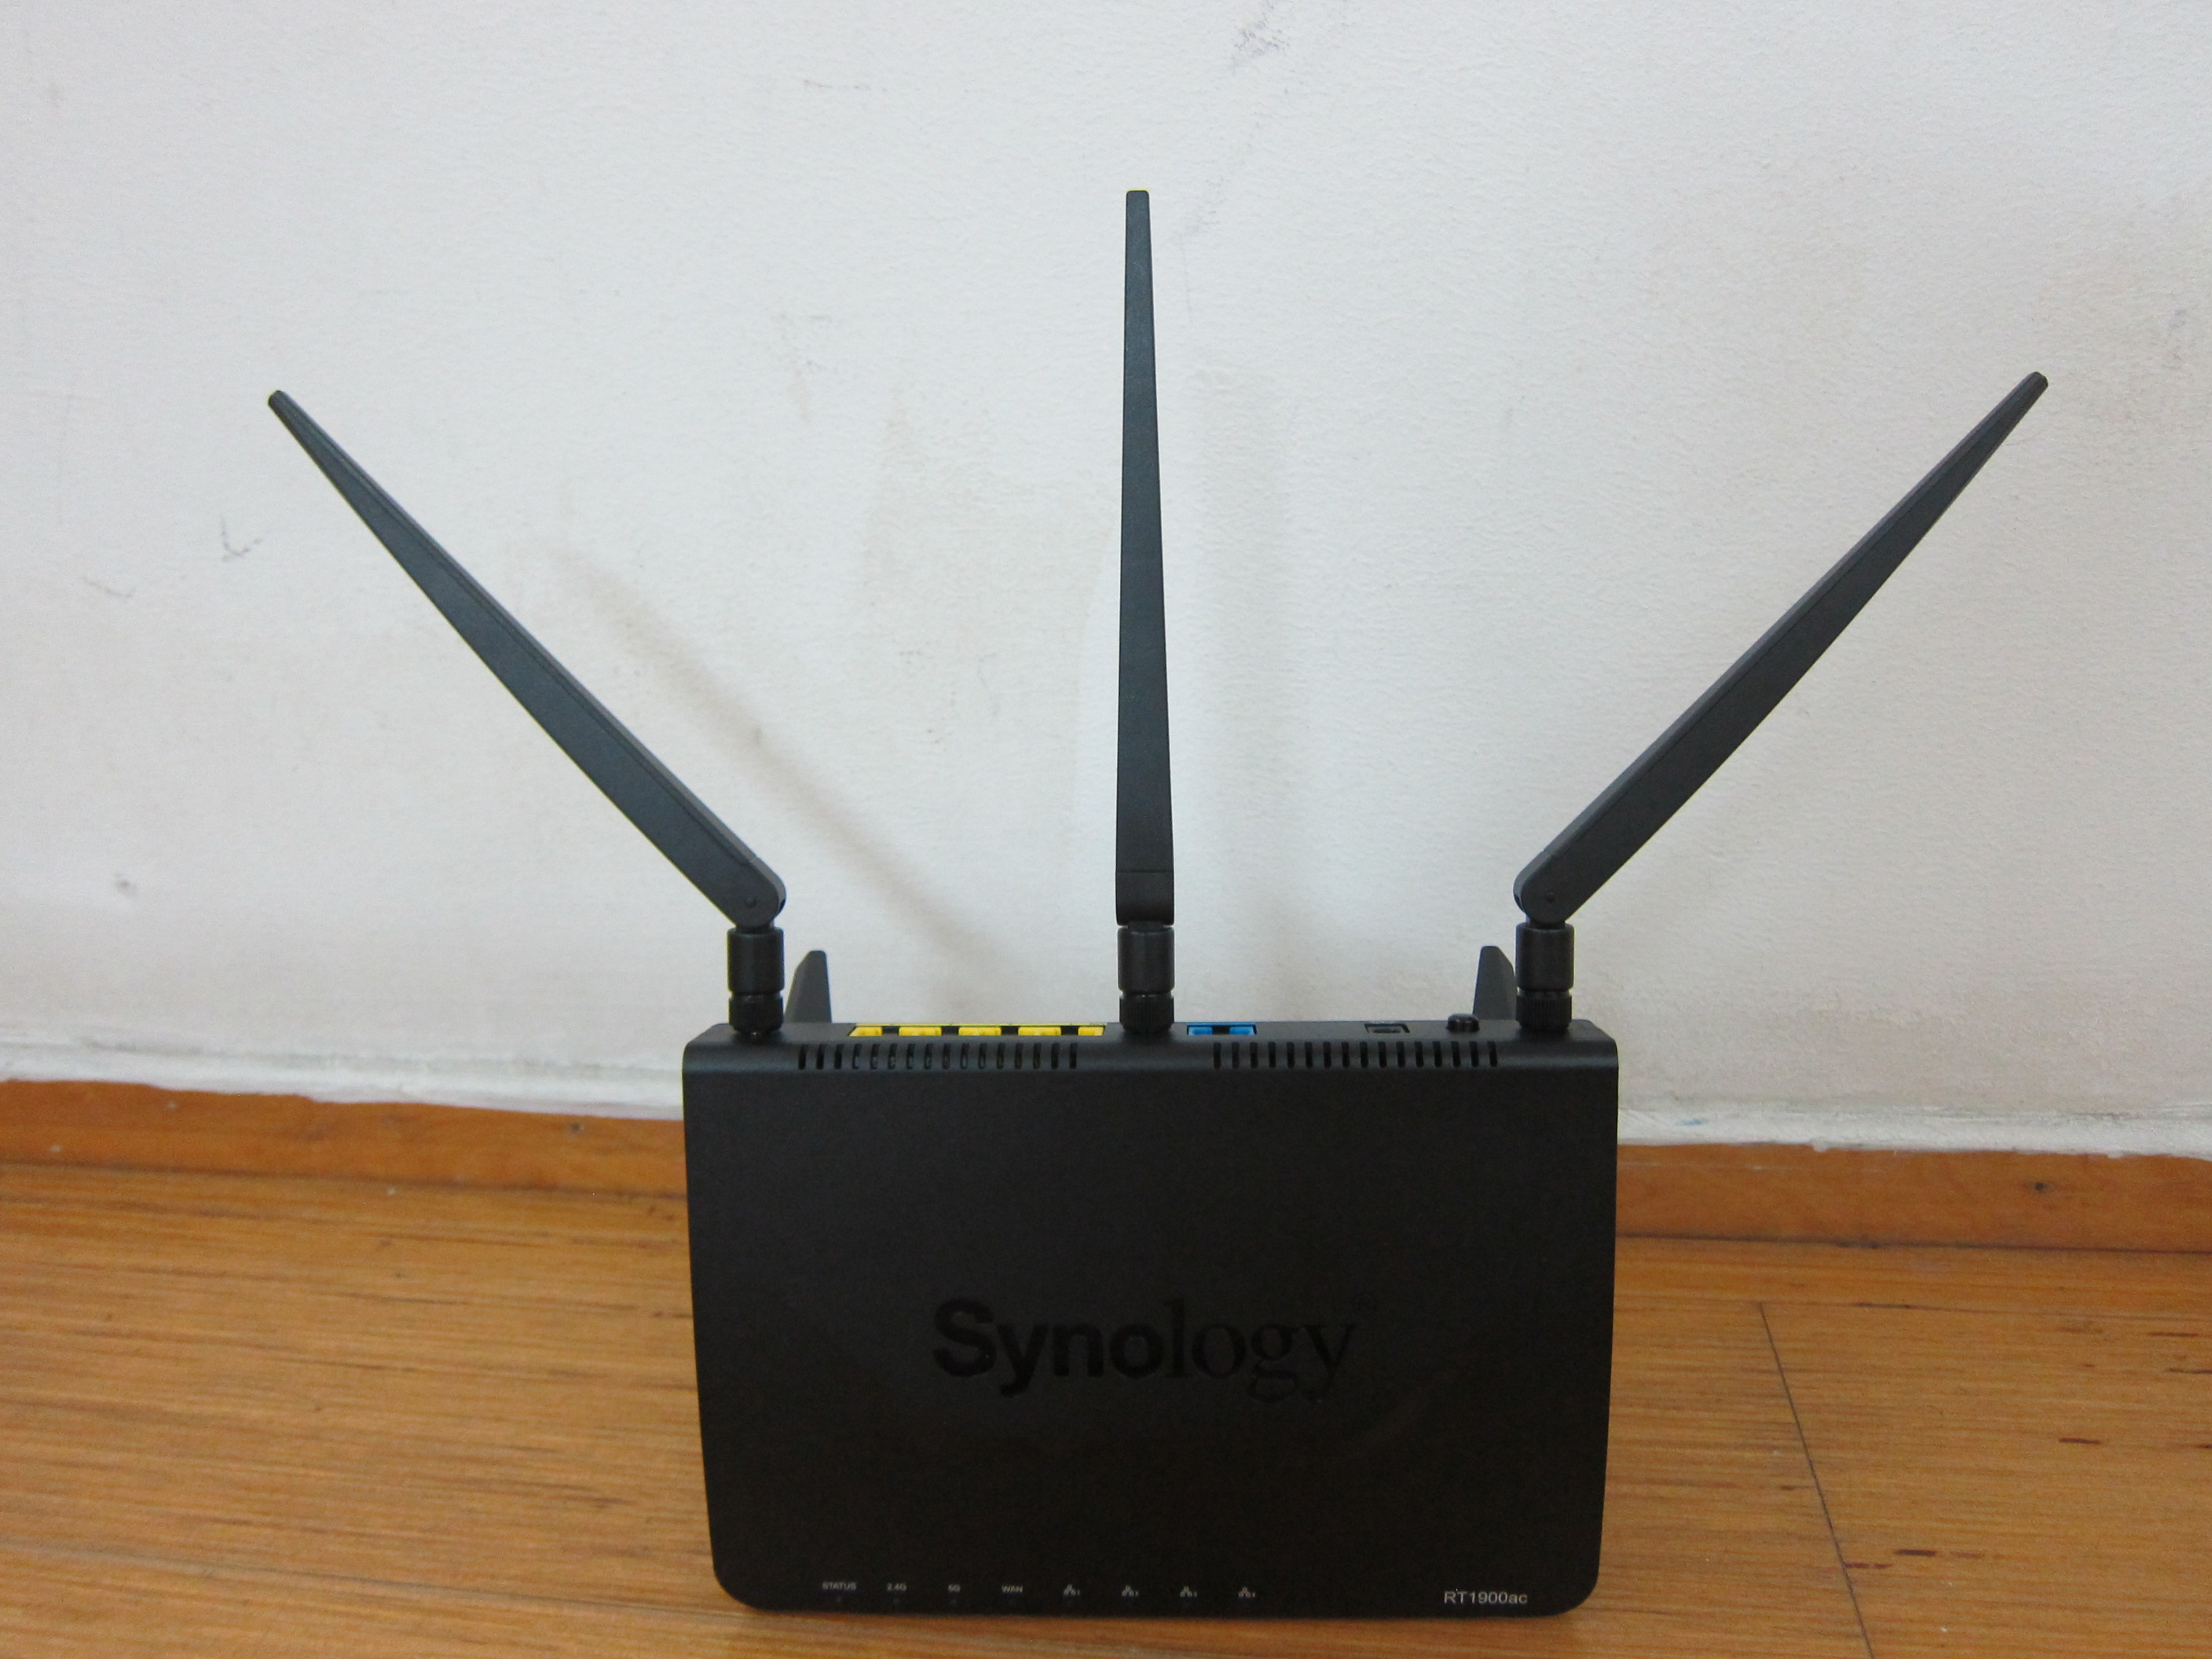 Synology Router Rt1900ac Review Blog Wireless Home Network Broadcom Diagram With Stand